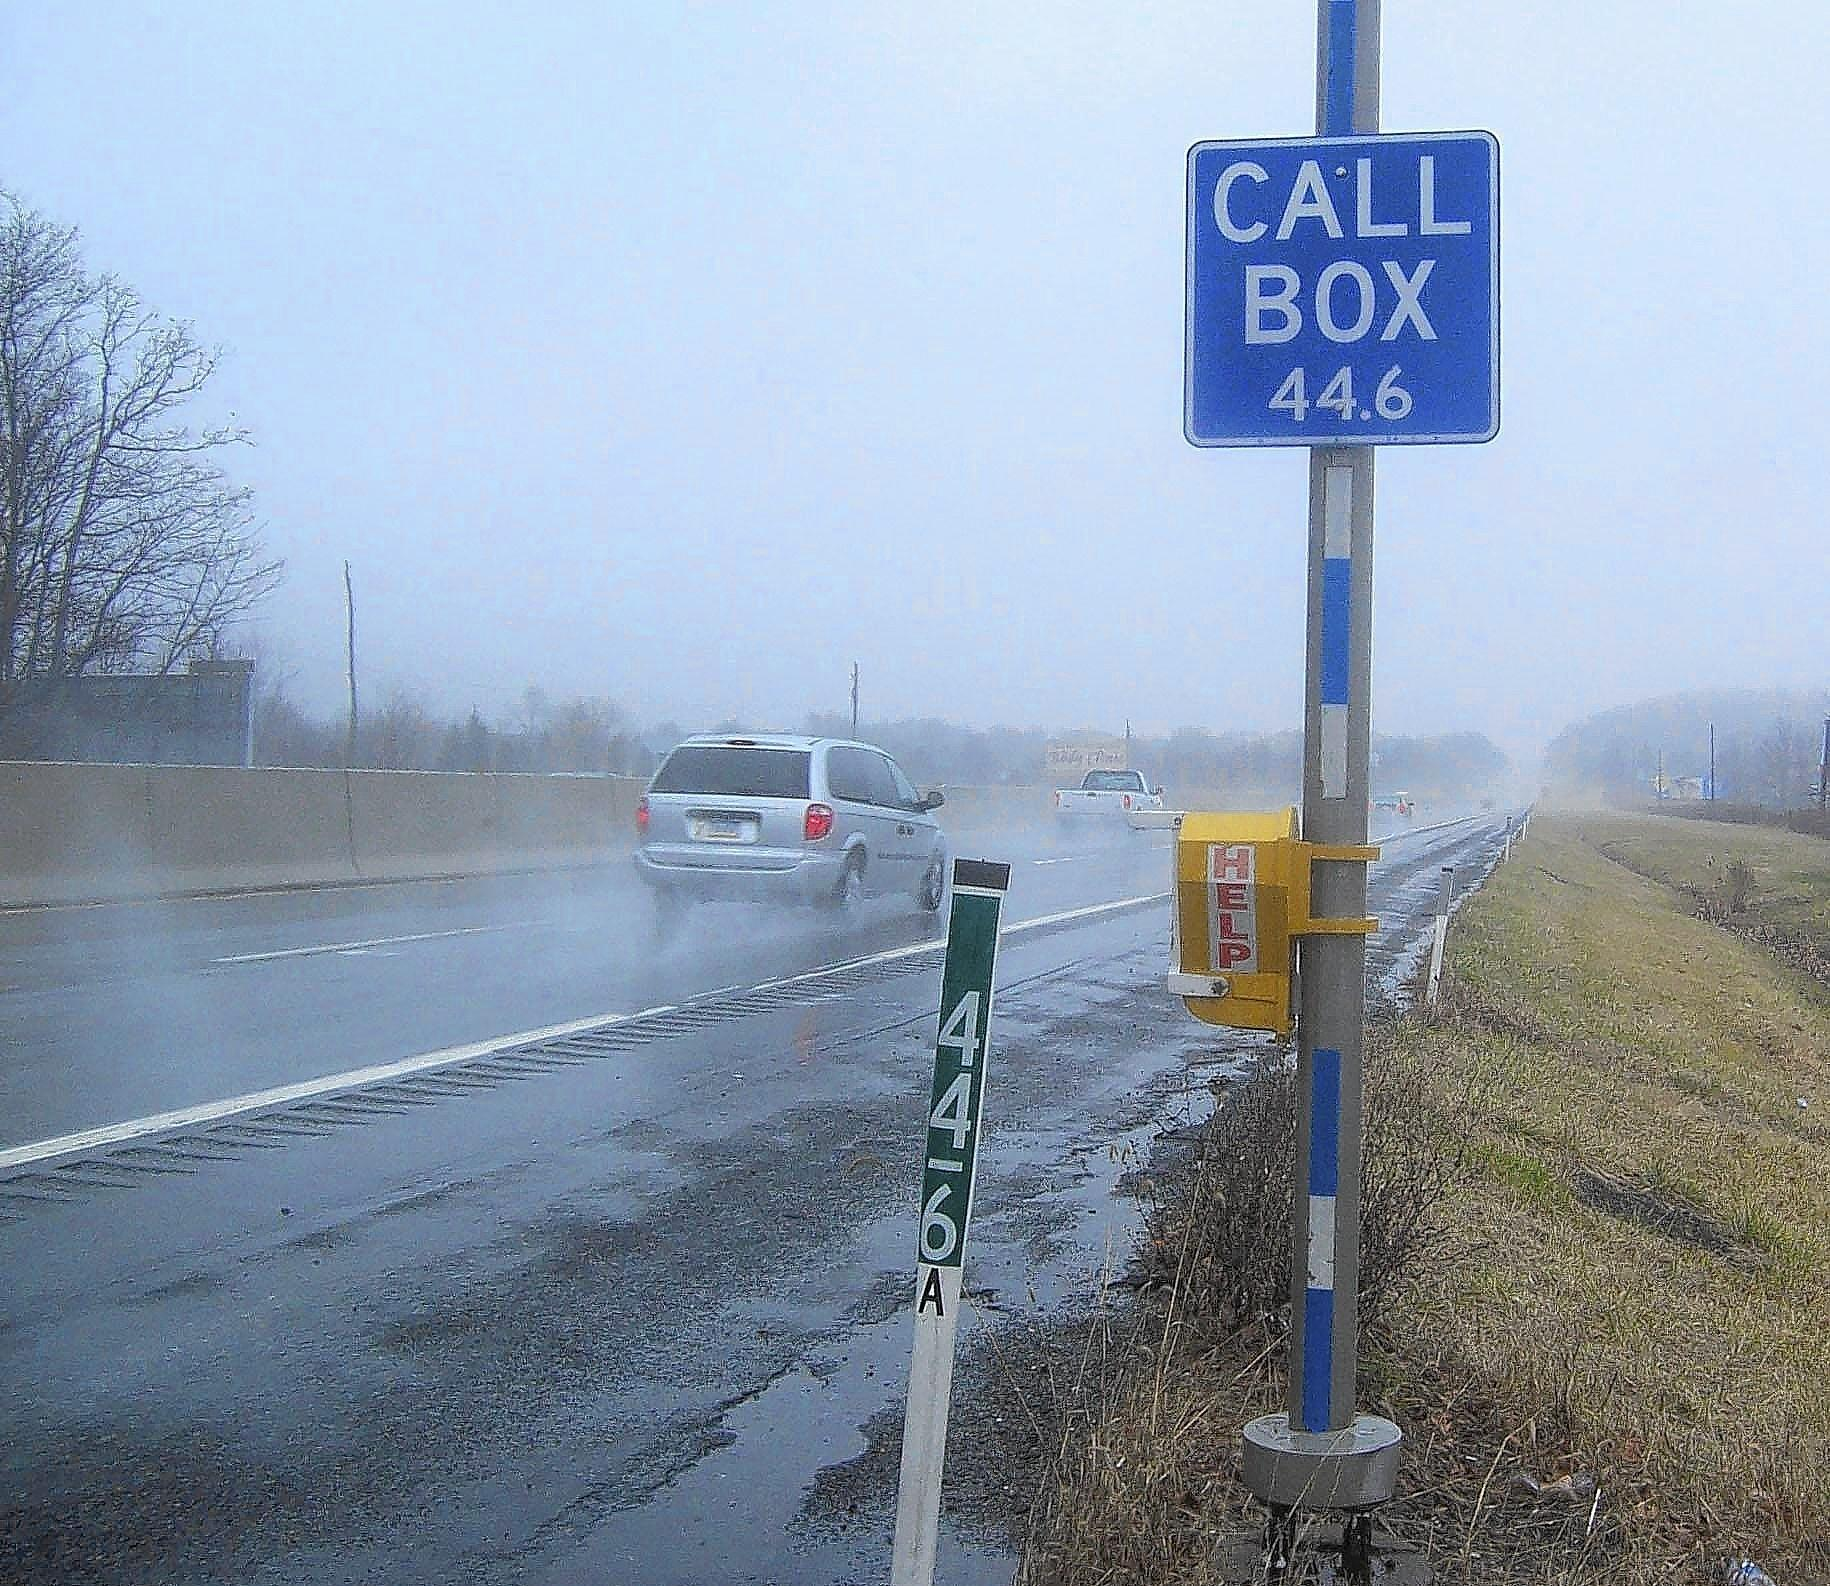 Turnpike traffic-alert radio, call boxes still on the road